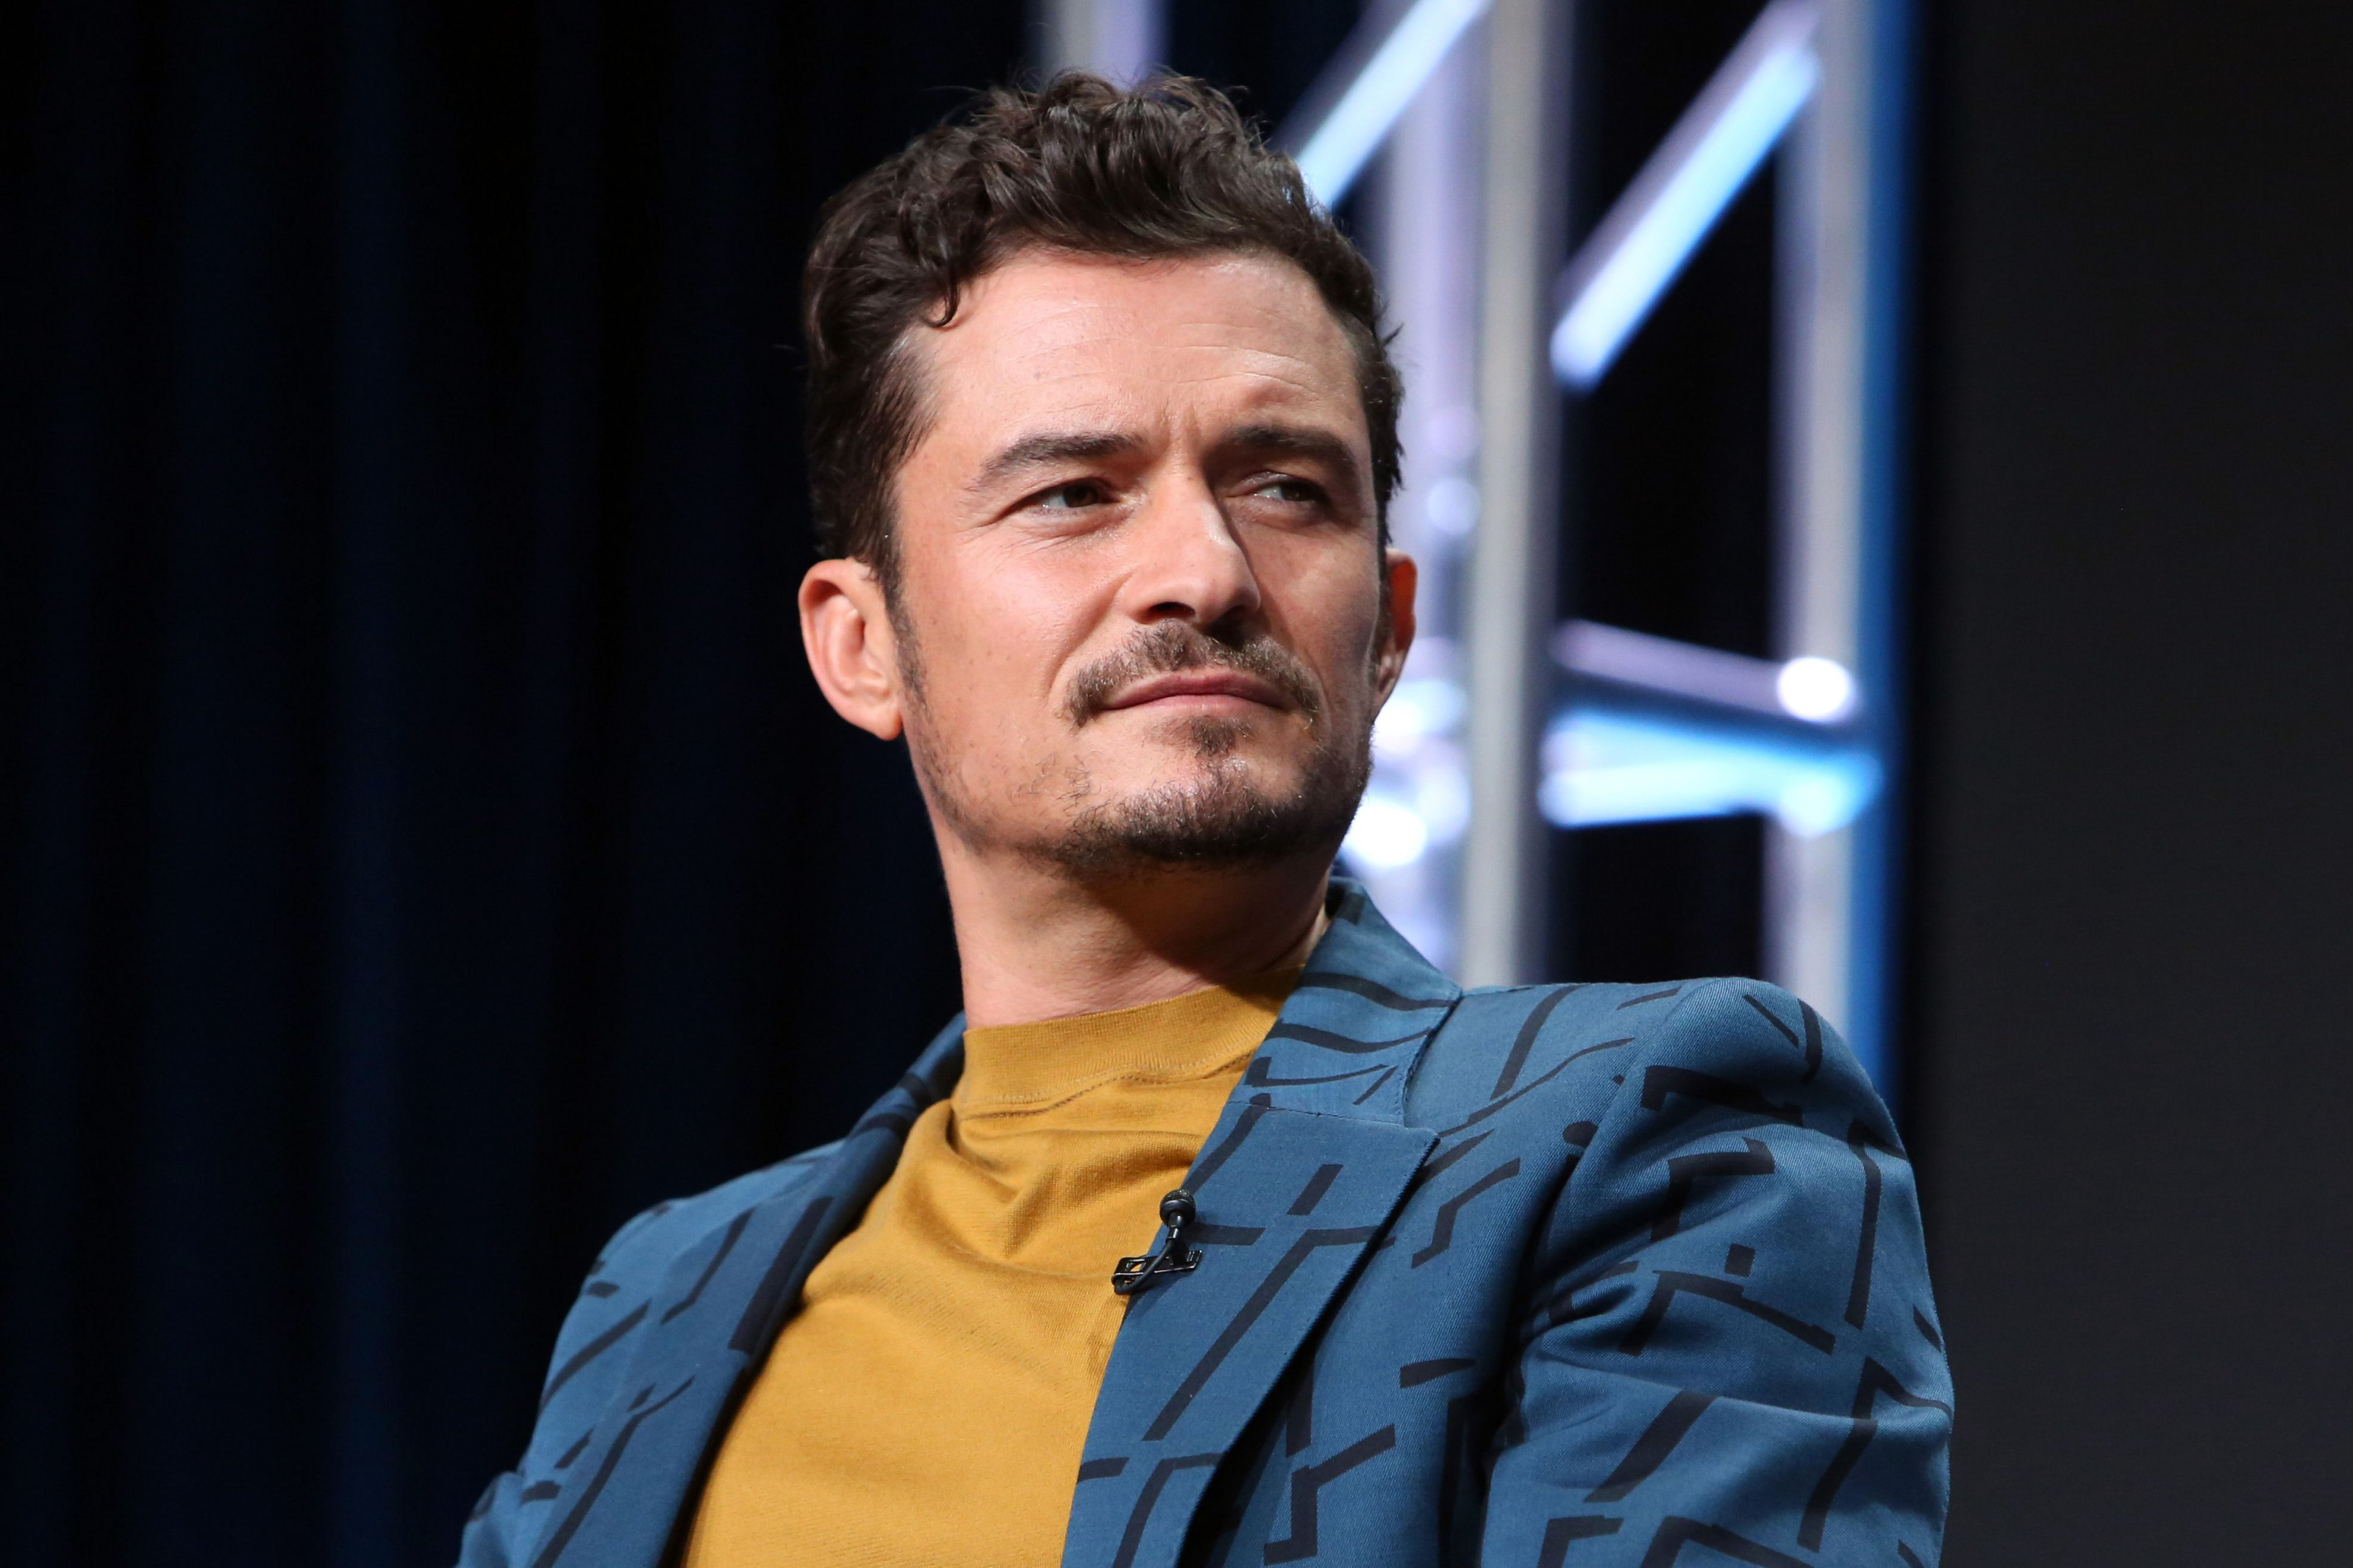 Orlando Bloom Texted Ex Miranda Kerr About Nude